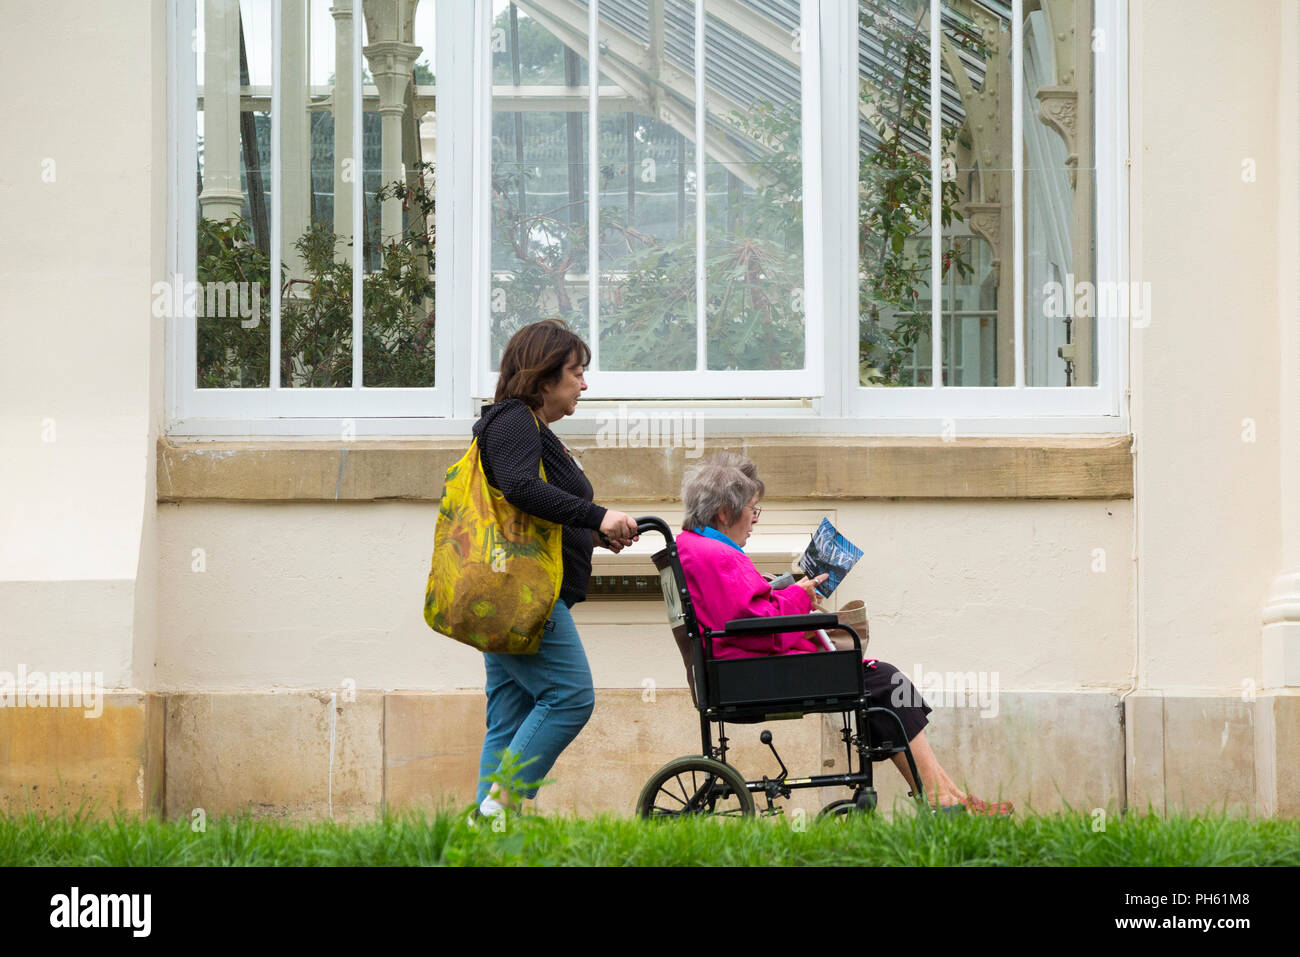 Visitors beside new glazing wooden / wood / timber replacement glazed windows in the restored Victorian Temperate House. Royal Botanic Garden, Kew. London. UK - Stock Image